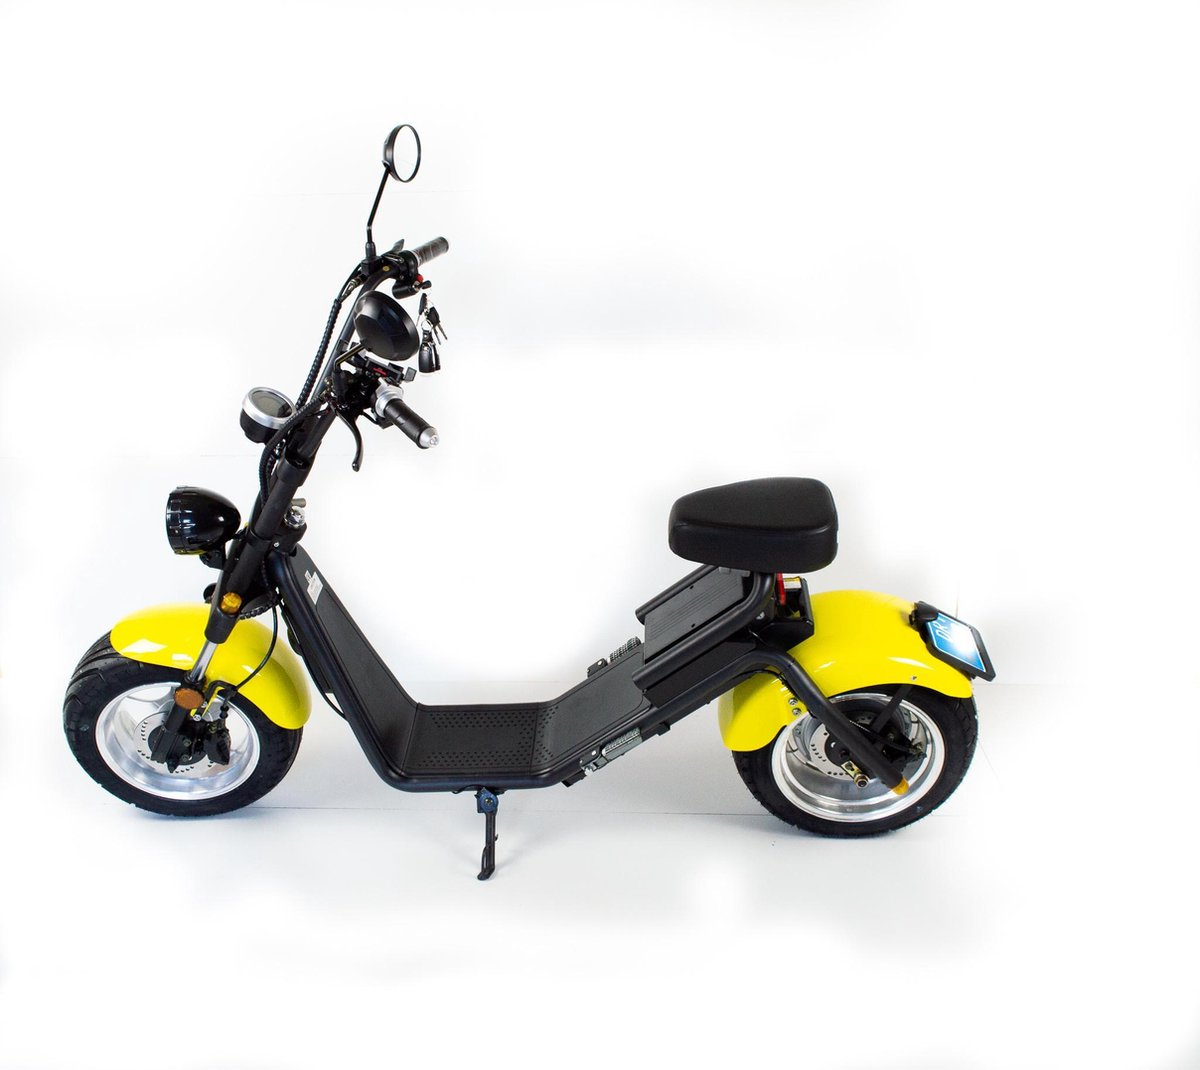 Stadsscooter,CITYCOCO,City coco, Licht Geel  Ebike  ( E-Scooter Ebike 100% Elektrische scooter Cool